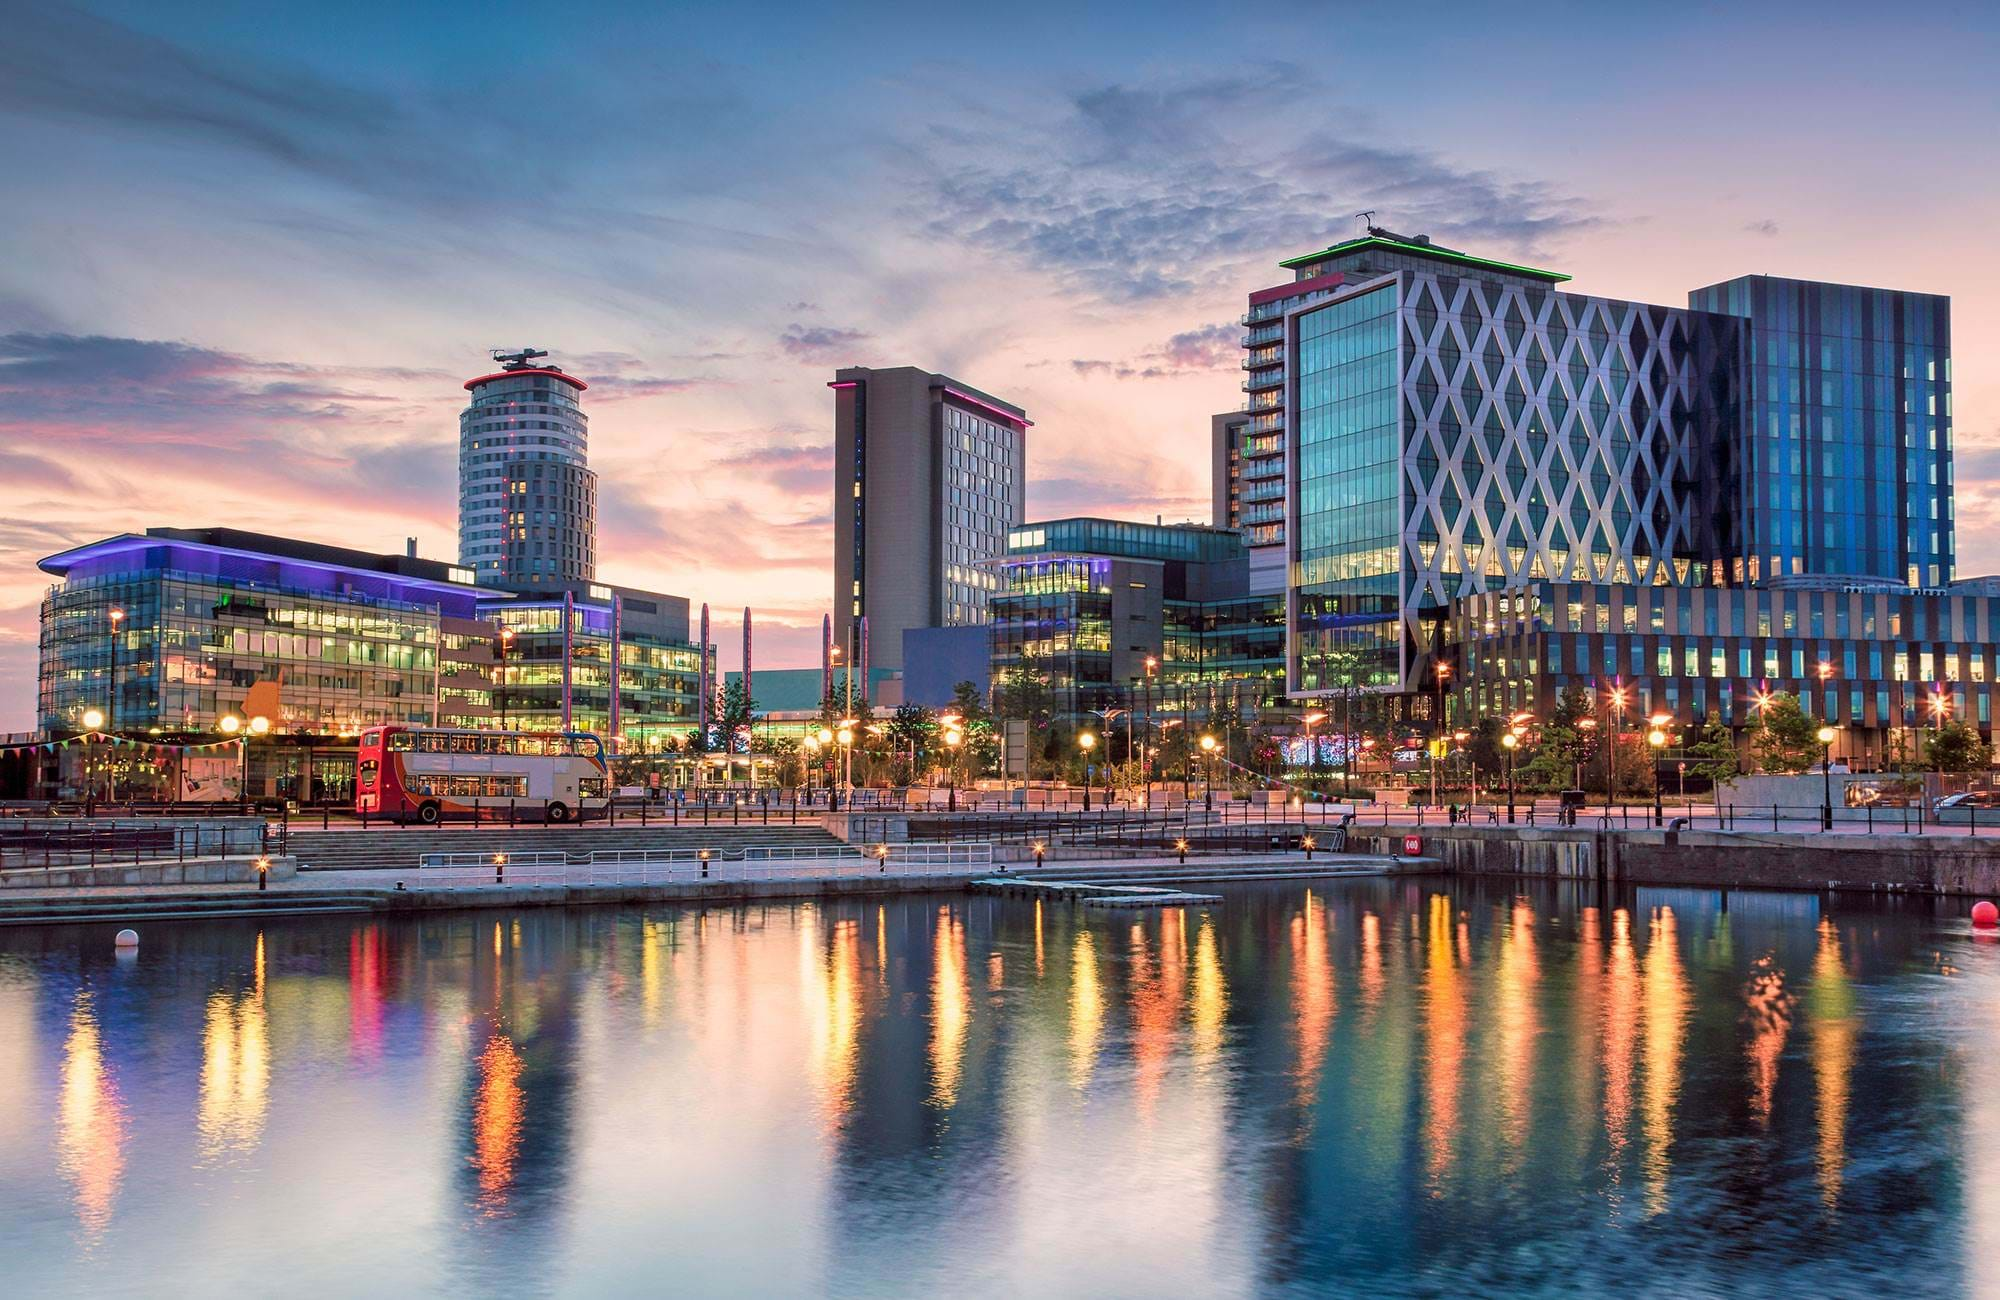 Manchester England Media City Salford Quays